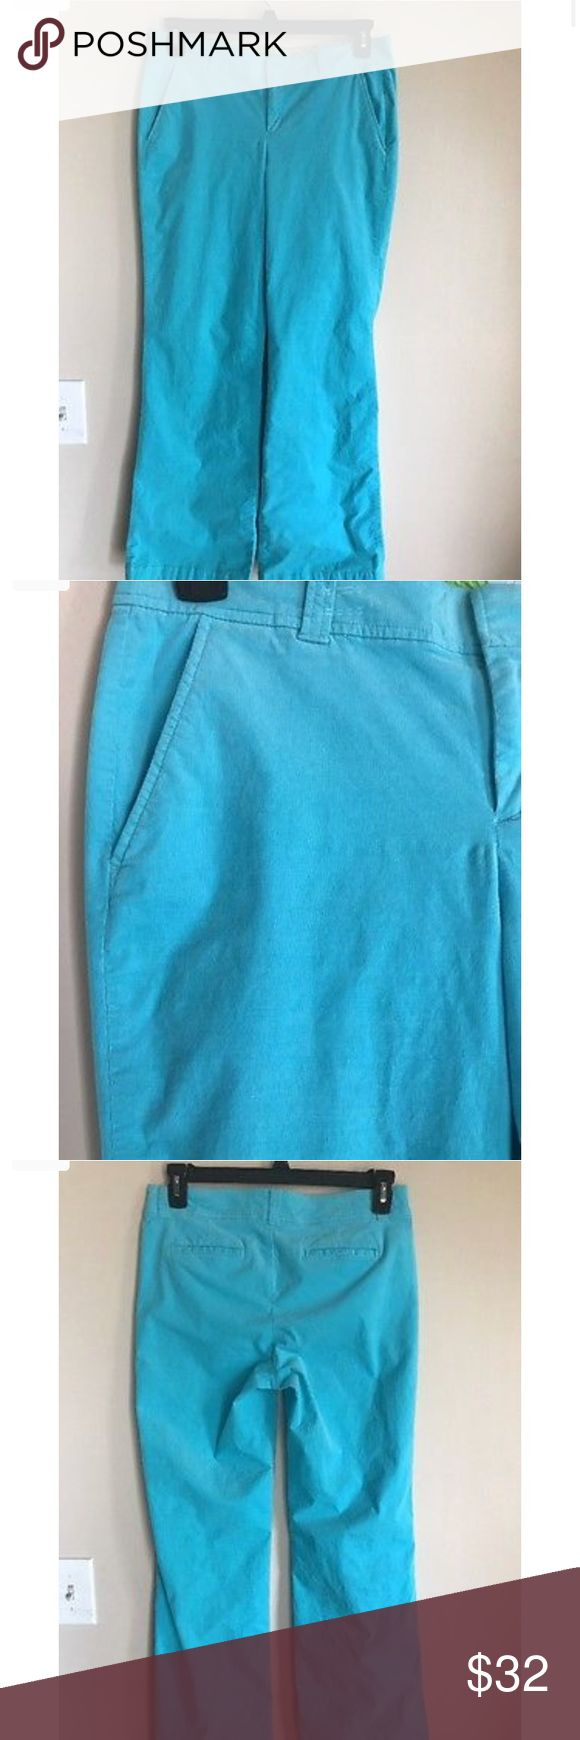 🏝Lilly Pulitzer Aqua Pants 🏝 Excellent condition!! Lightweight corduroy look. Floral printed fabric inside waistband. Side pockets and two back pockets. Lilly Pulitzer Pants Boot Cut & Flare